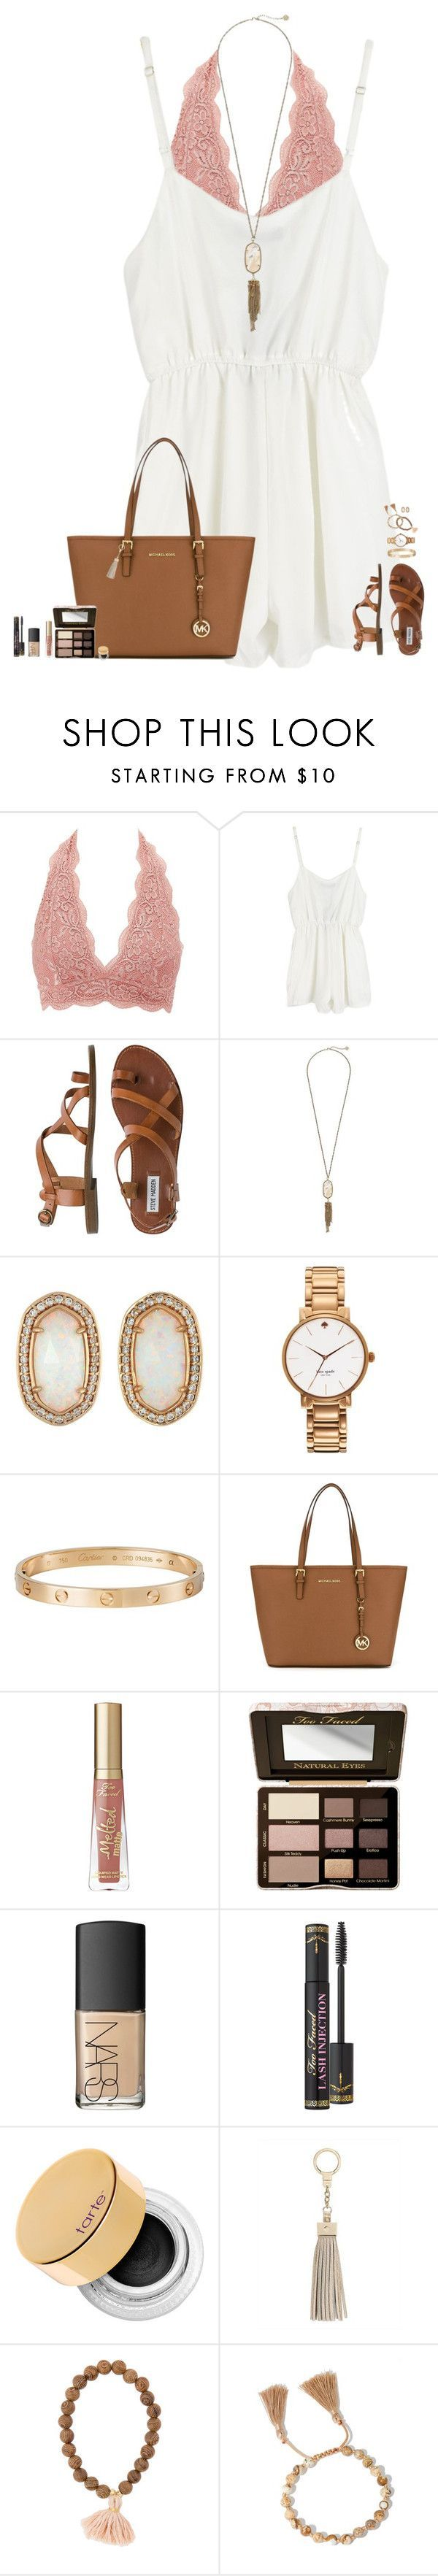 """- b o h o v i b e s -"" by maggie-prep ❤️ liked on Polyvore featuring Charlotte Russe, Steve Madden, Kendra Scott, Kate Spade, Cartier, MICHAEL Michael Kors, Too Faced Cosmetics, NARS Cosmetics, tarte and maggiesbestsets"